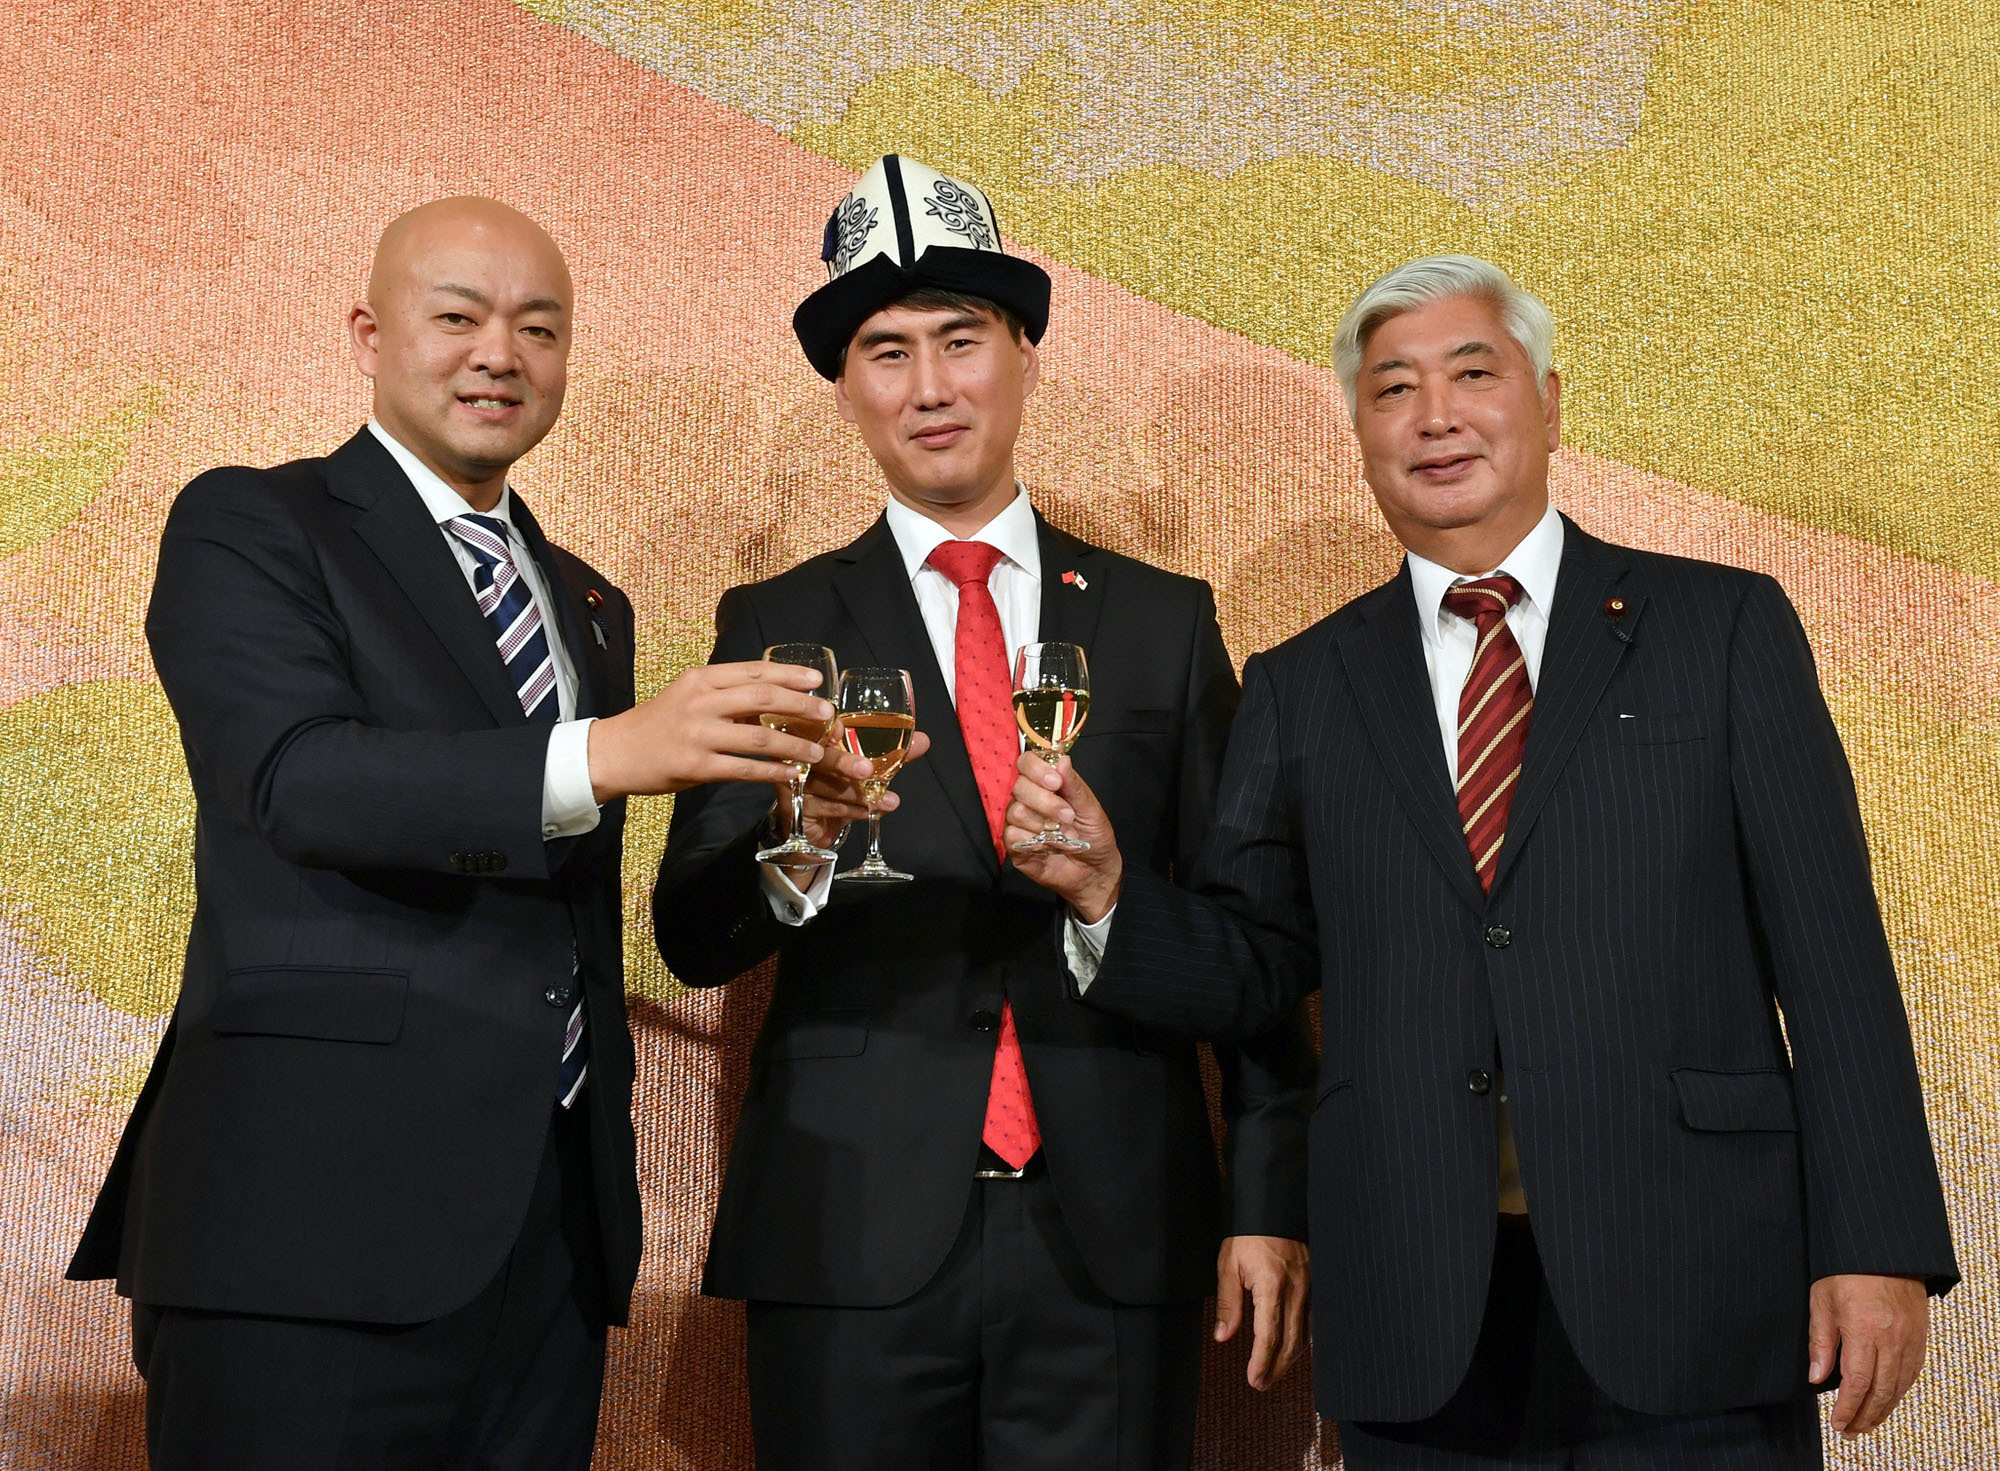 Kyrgyz Ambassador Chingiz Aidarbekov (center) poses for a photograph with Manabu Horii (left), parliamentary vice-minister of foreign affairs, and Gen Nakatani (right), head of the Japan-Kyrgyz Parliamentary Friendship League, during a reception at Imperial Hotel in Tokyo on Nov. 20 to celebrate the country's independence day. |  YOSHIAKI MIURA